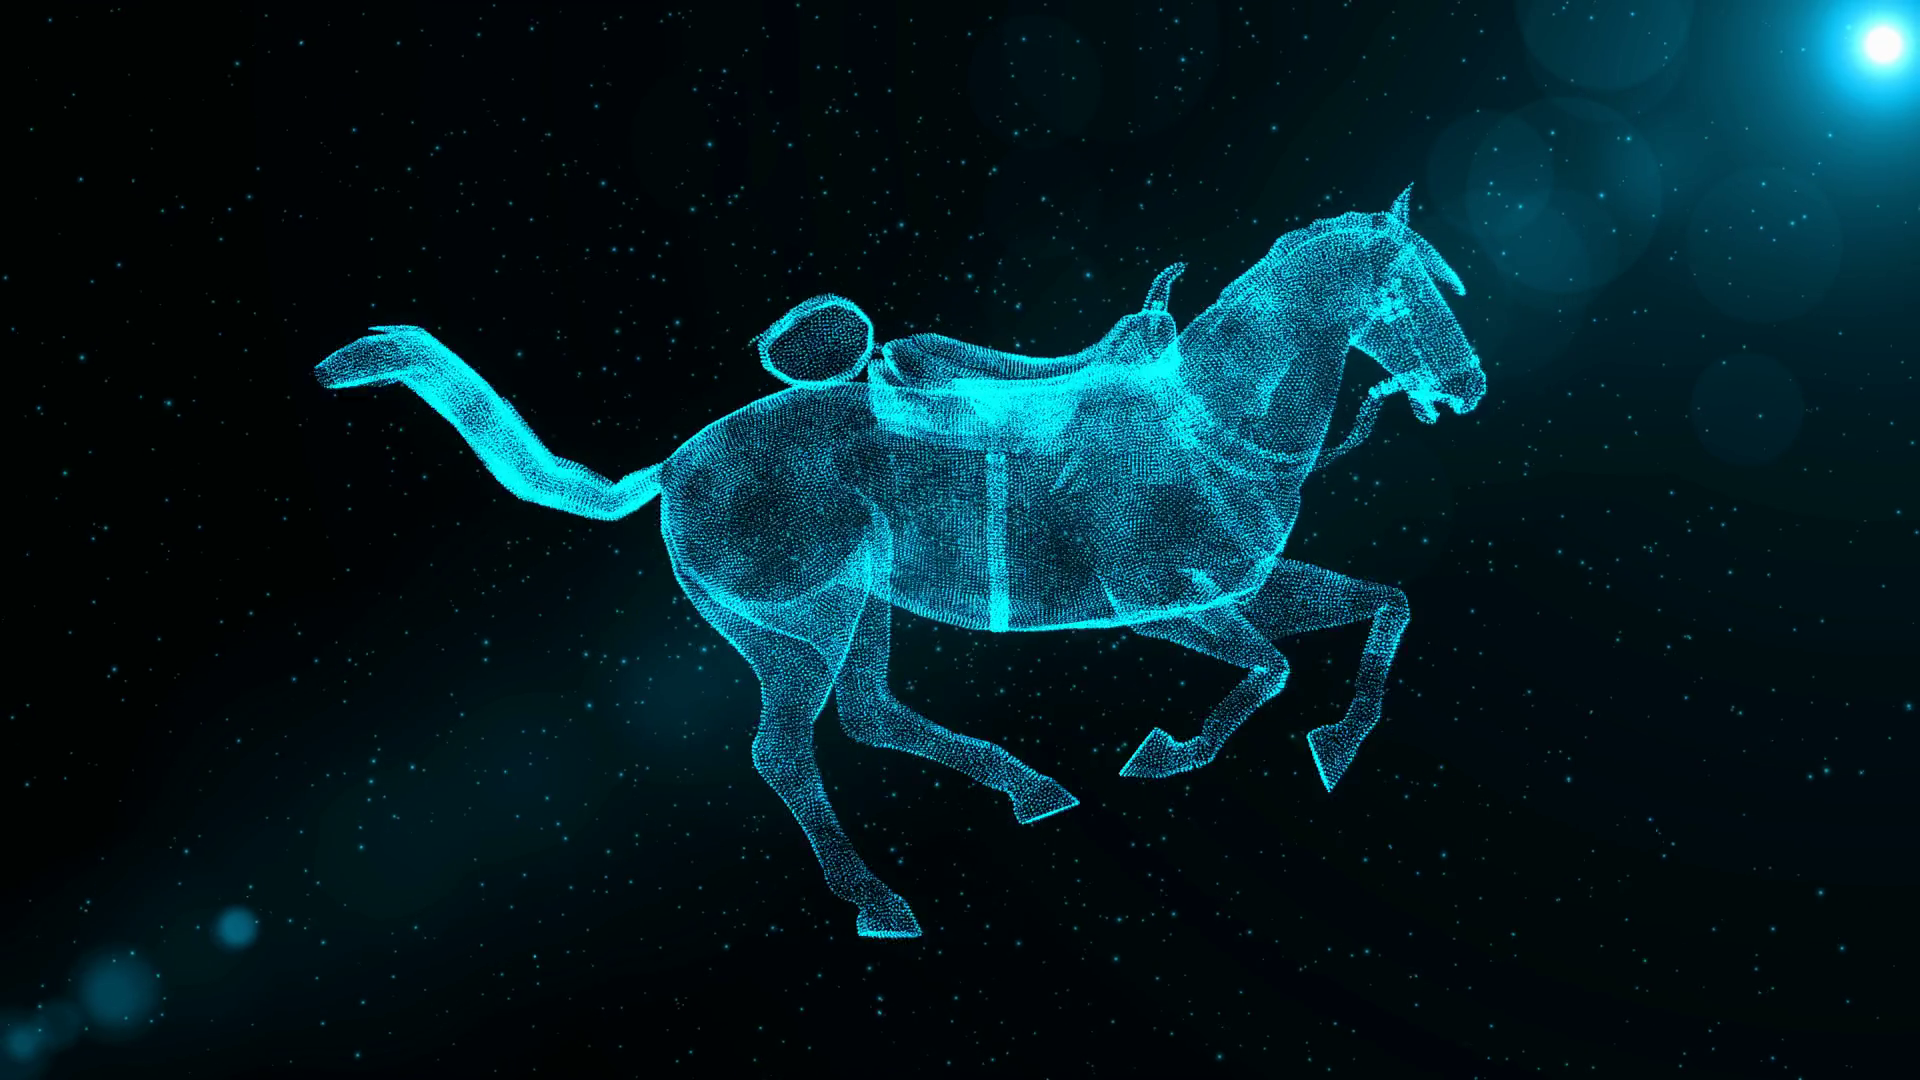 Galloping Horse With Saddle Glowing Abstract Animal Running Through Particles 3d Animation Motion Background Storyblocks